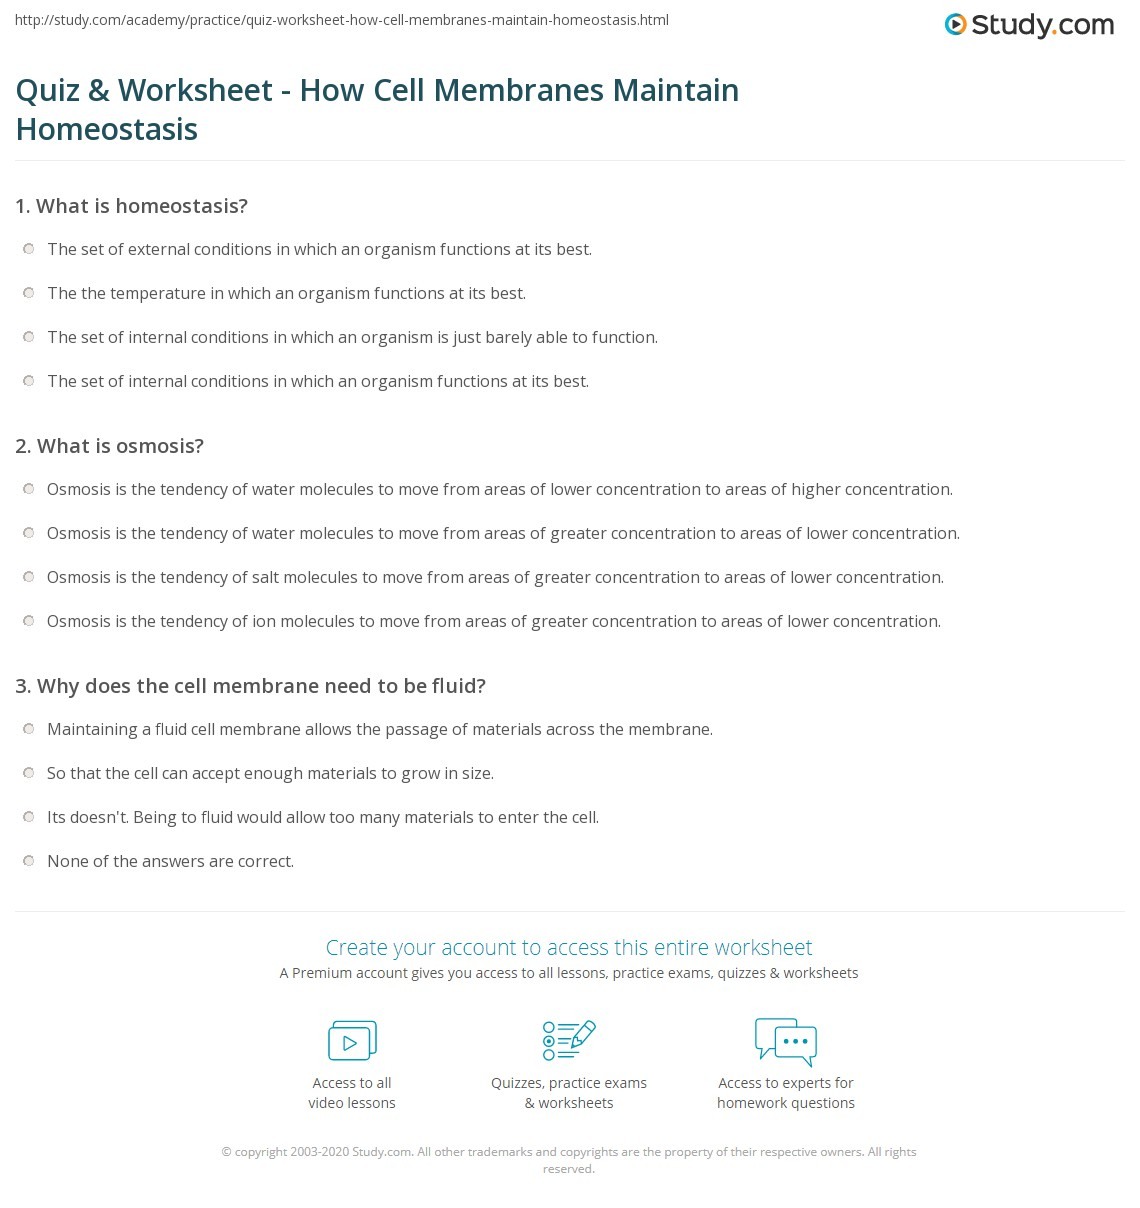 worksheet Homeostasis And Transport Worksheet quiz worksheet how cell membranes maintain homeostasis study com print does the membrane worksheet